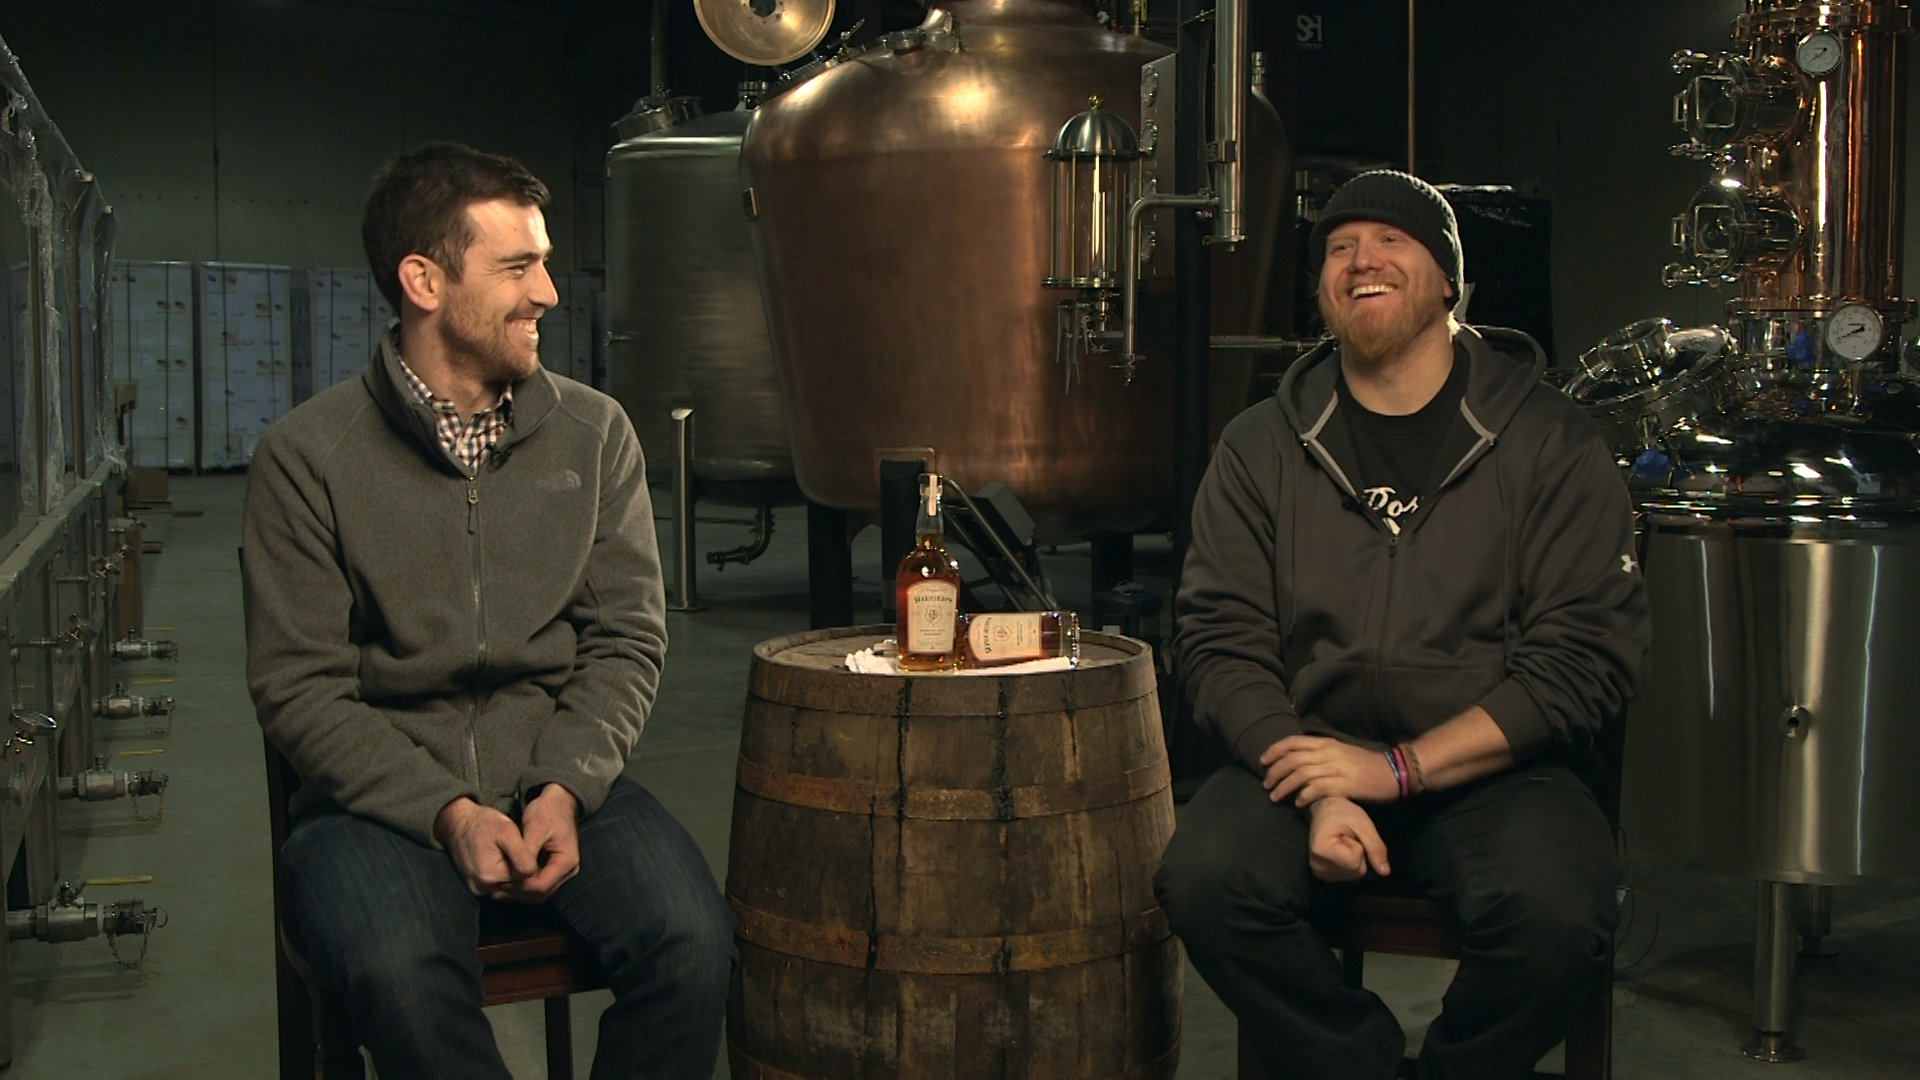 Two men sit in a distillery laughint. A barrel sits between them, and two bottles of alcohol are on the barrel.